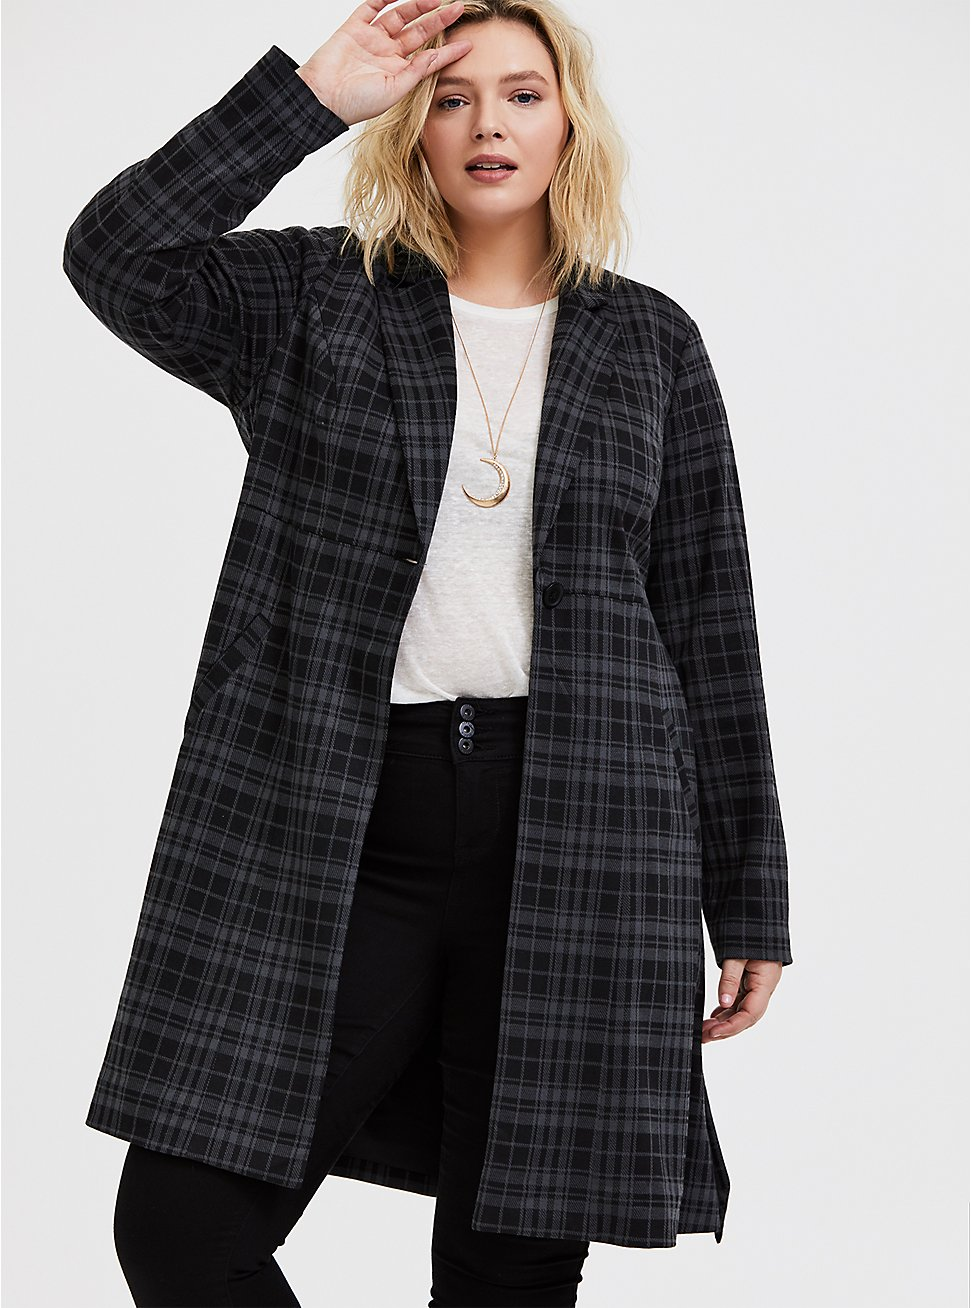 Grey Plaid Double-Knit Longline Blazer, PLAID, hi-res